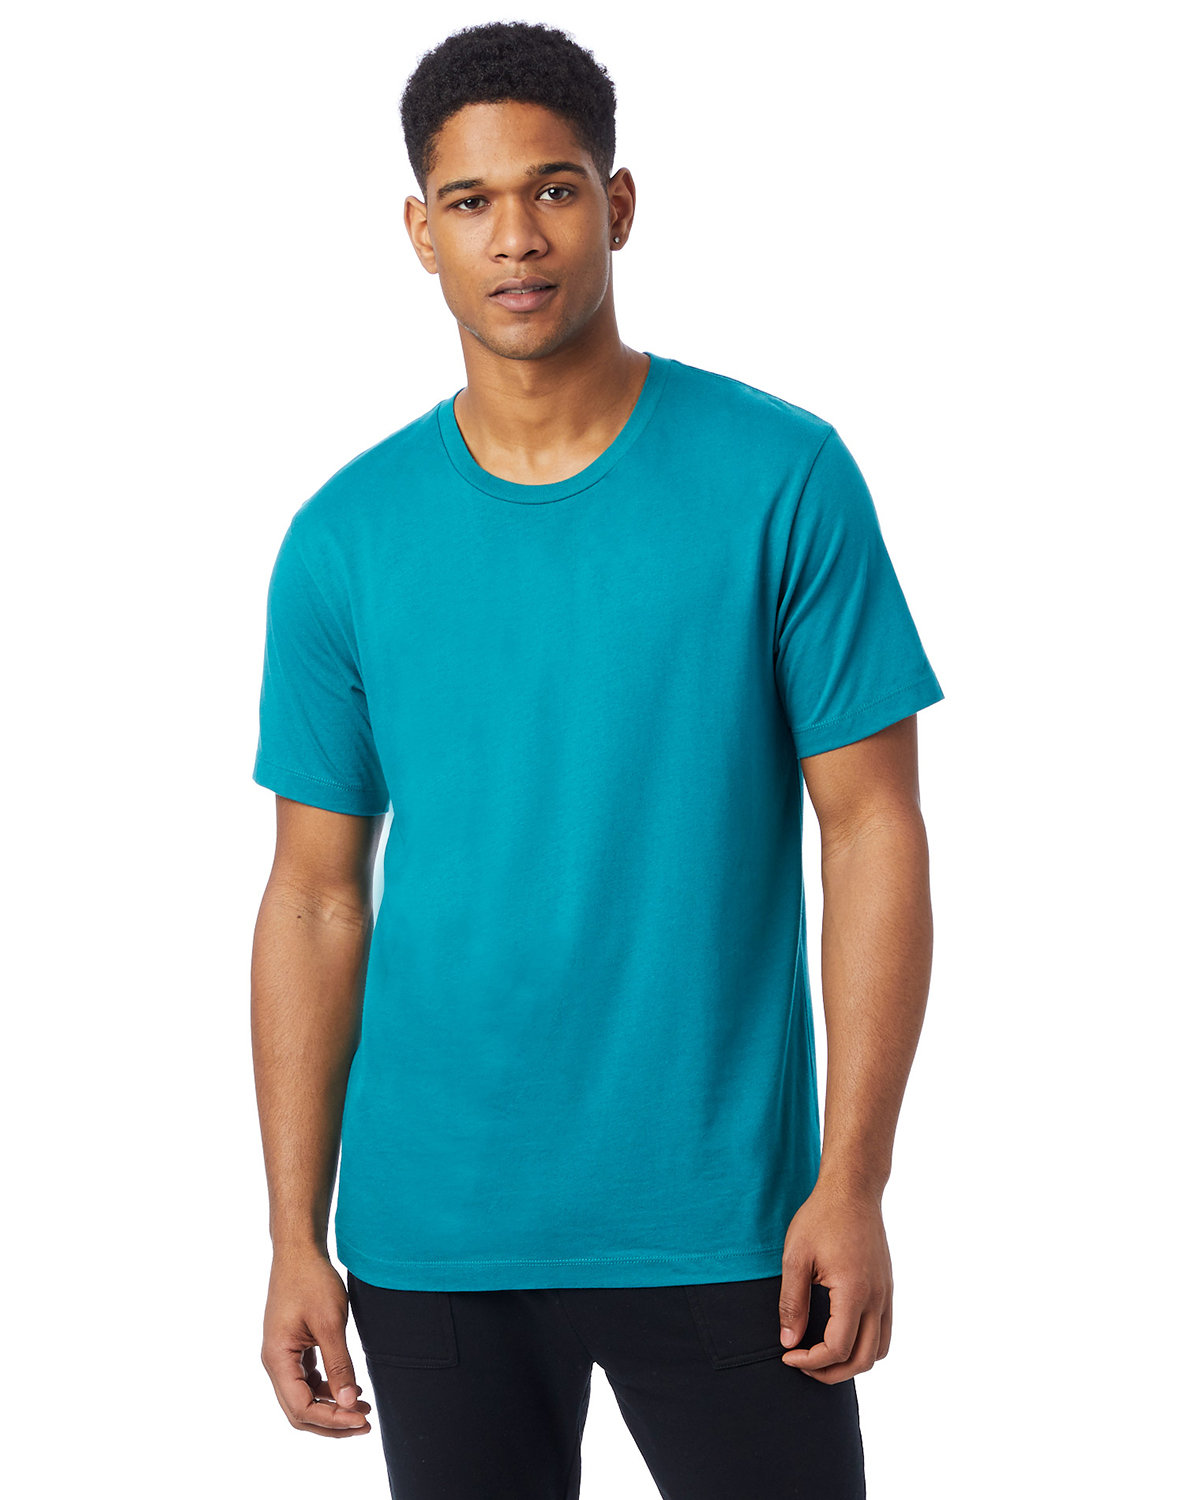 Alternative Unisex Go-To T-Shirt TEAL